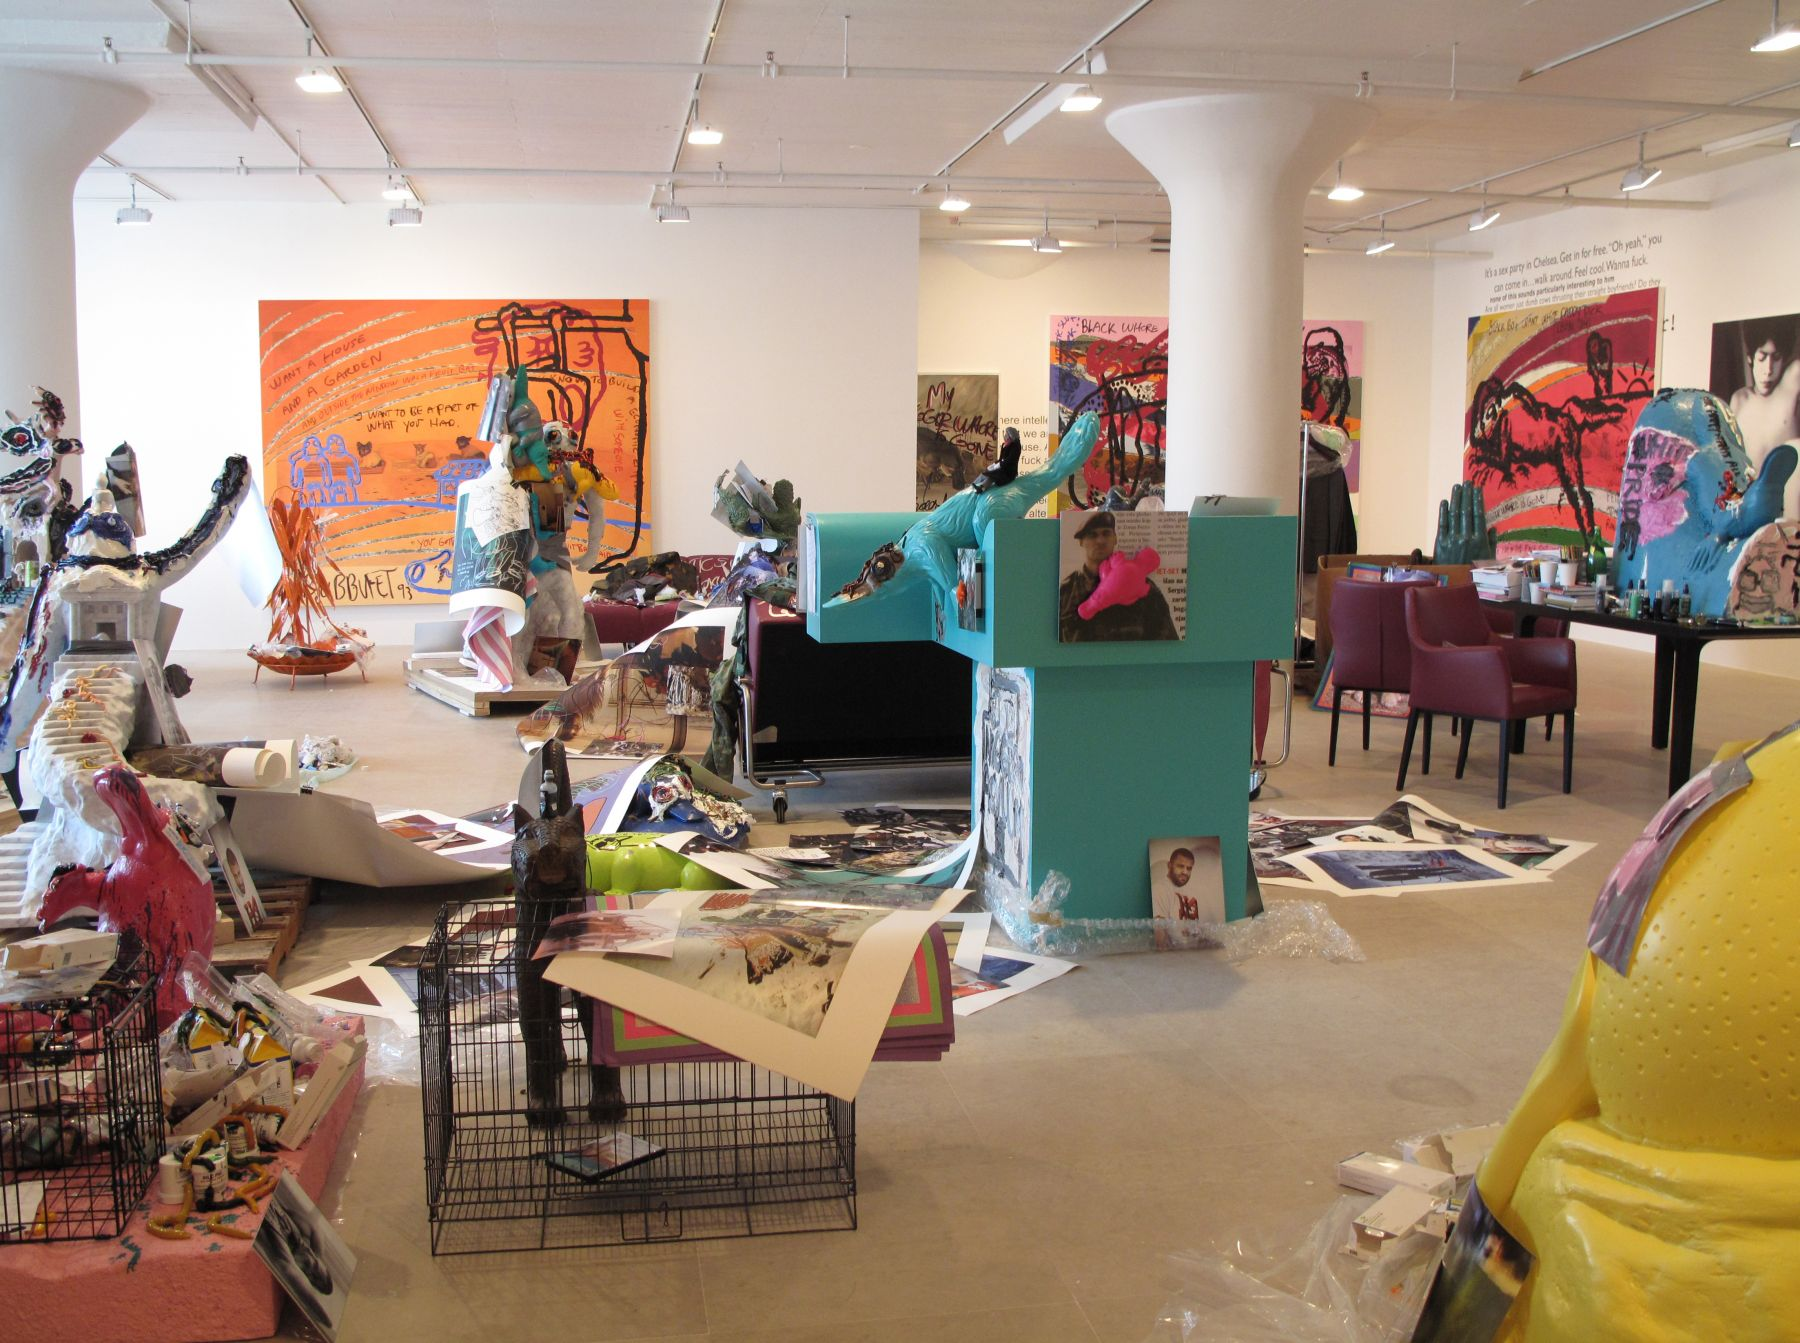 Installation view, The Synthetic Slut: A Novel by Bjarne Melgaard, Greene Naftali, New York, 2010